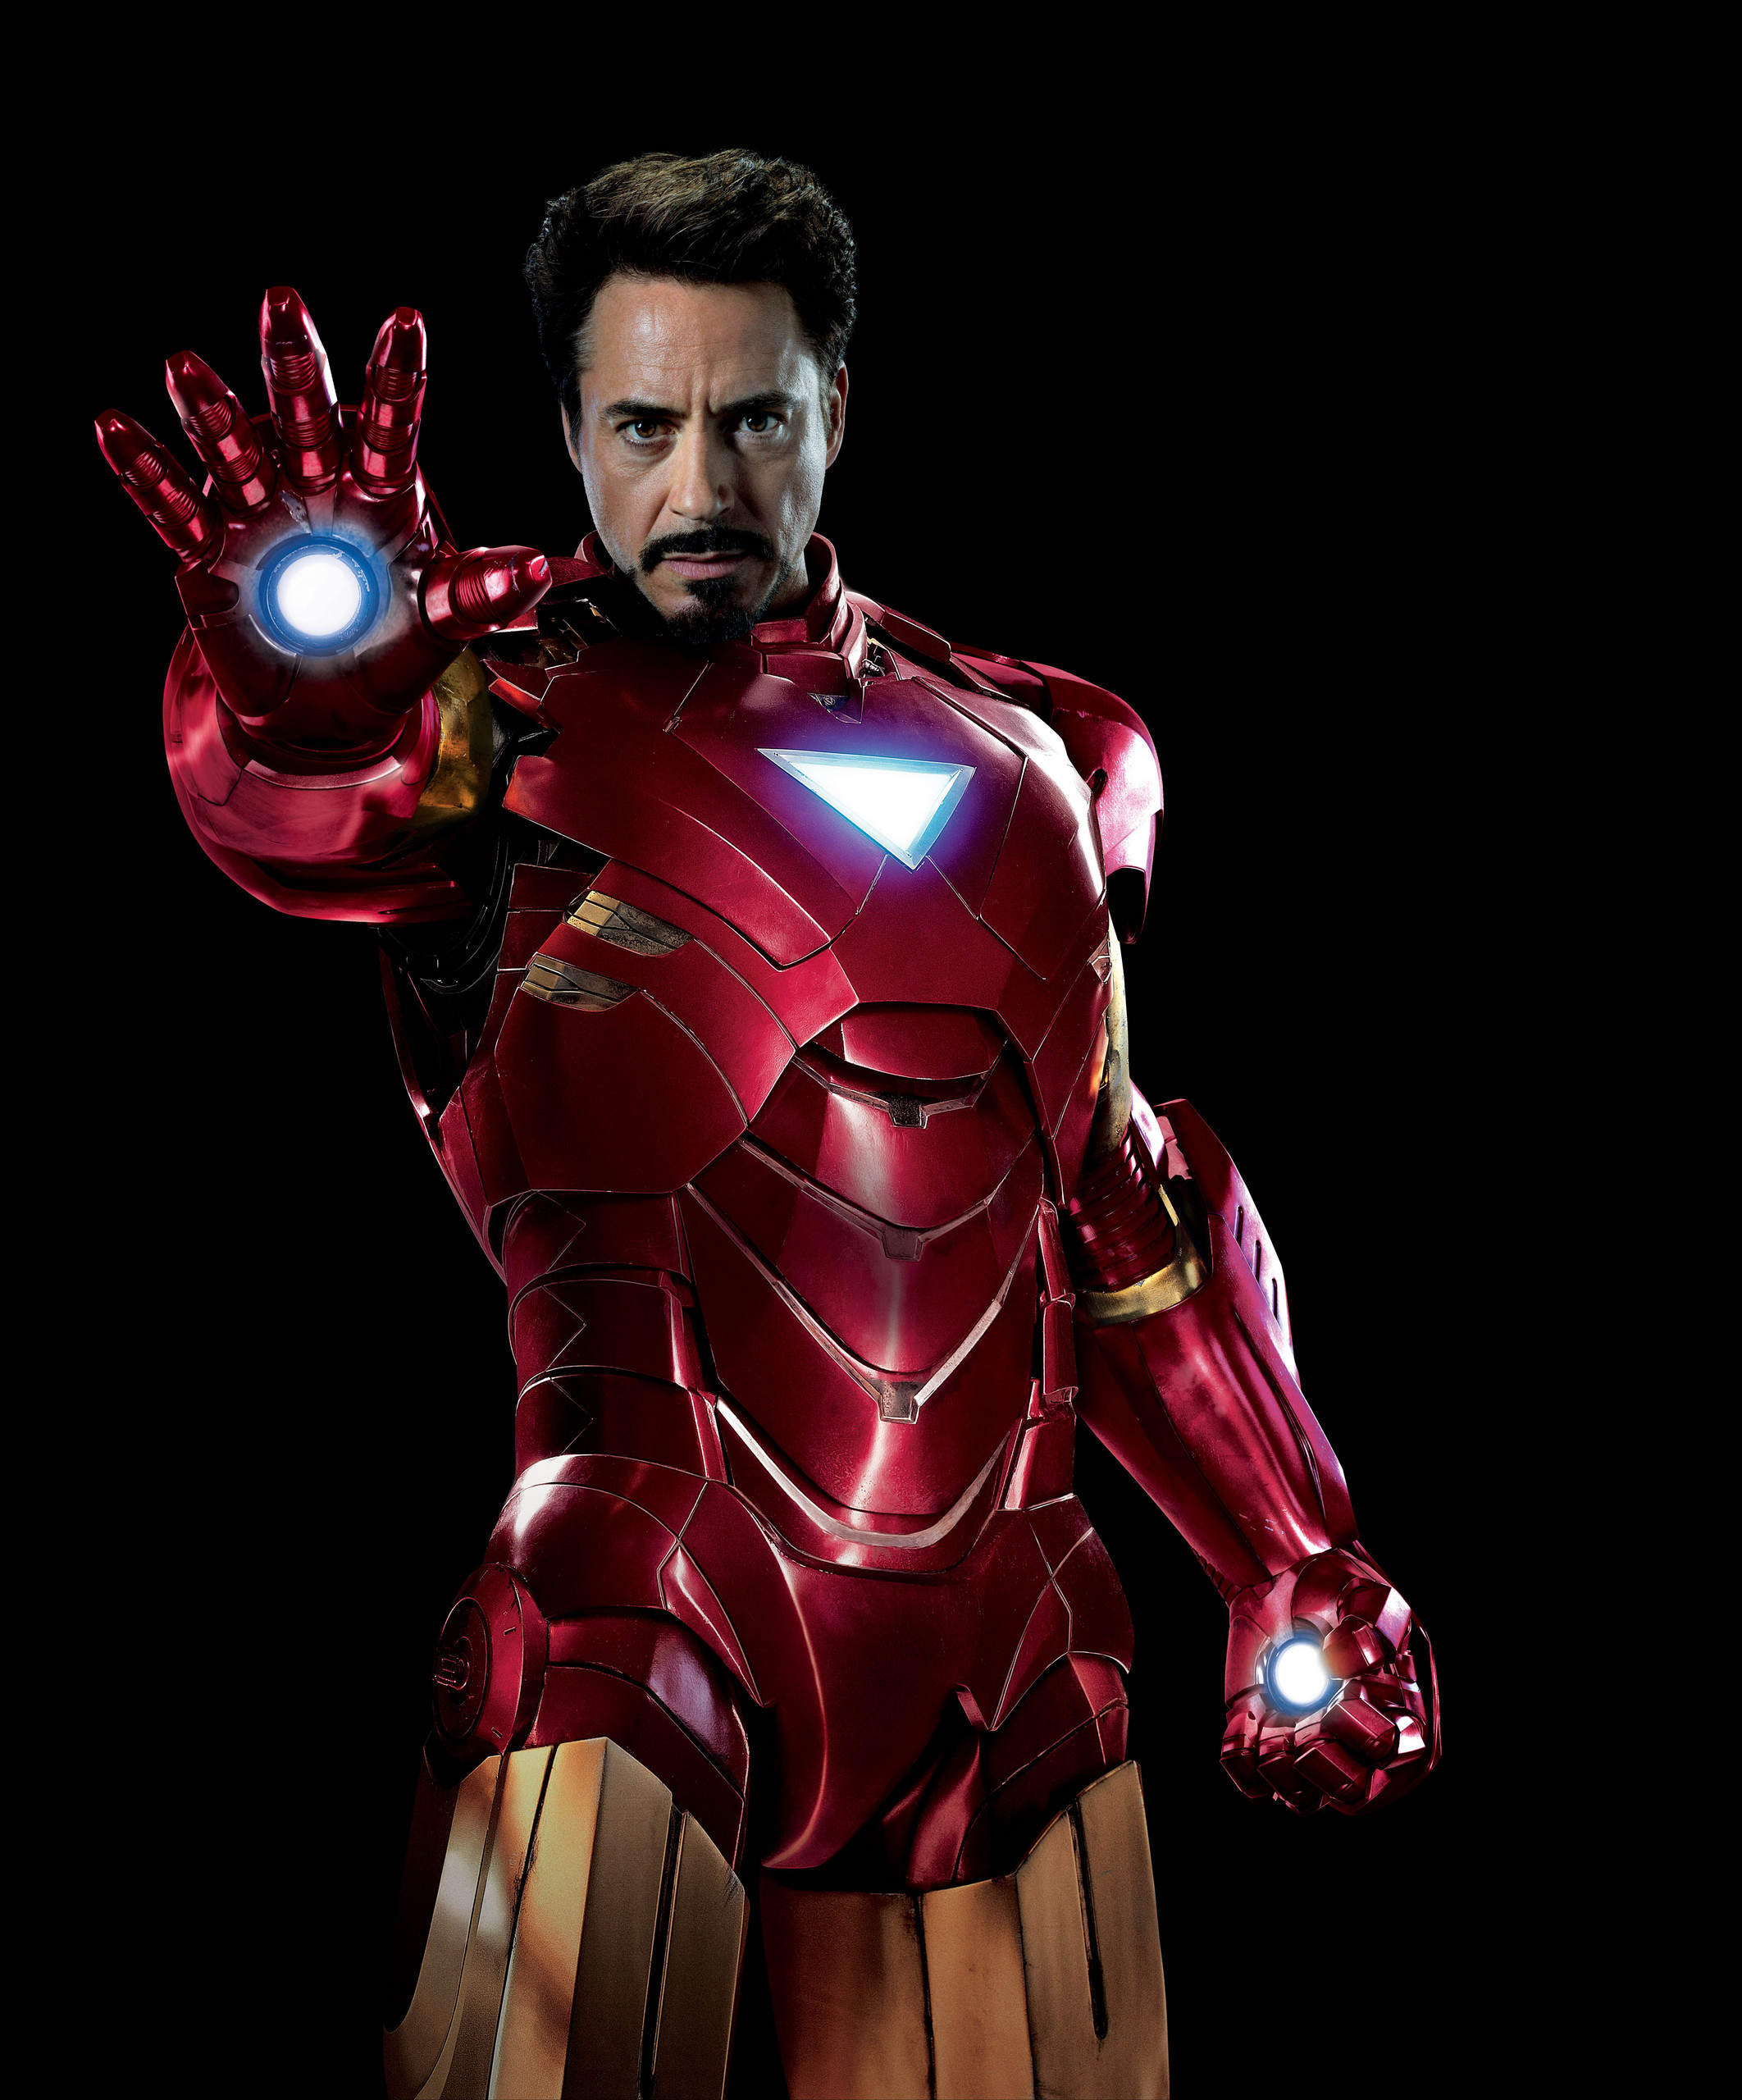 Iron Man Tony Stark The Avengers Photo 29489238 Fanpop